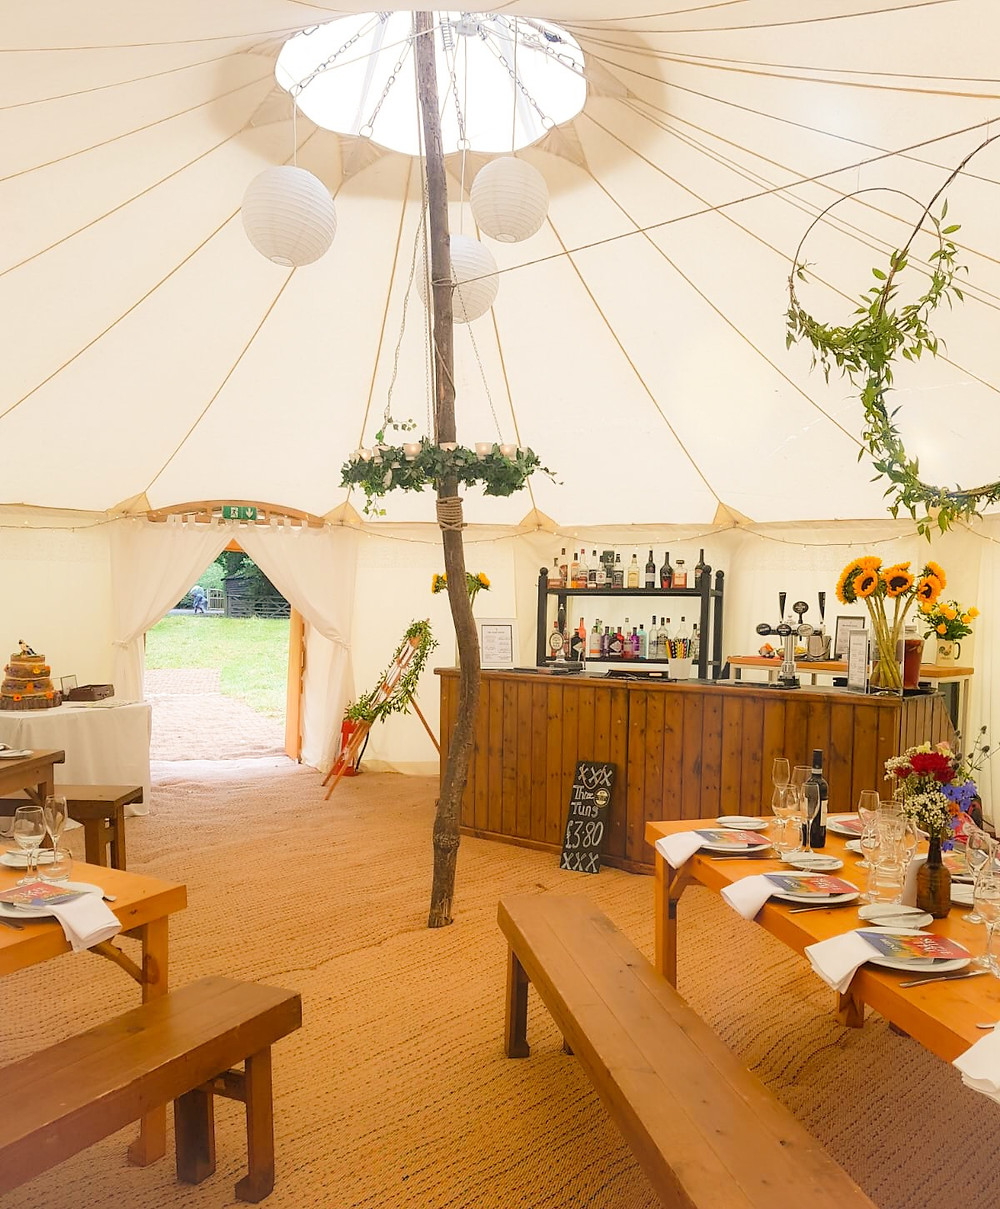 Round tent wedding, rustic mobile bar, How to do a wedding on a small budget, venue decoration ideas